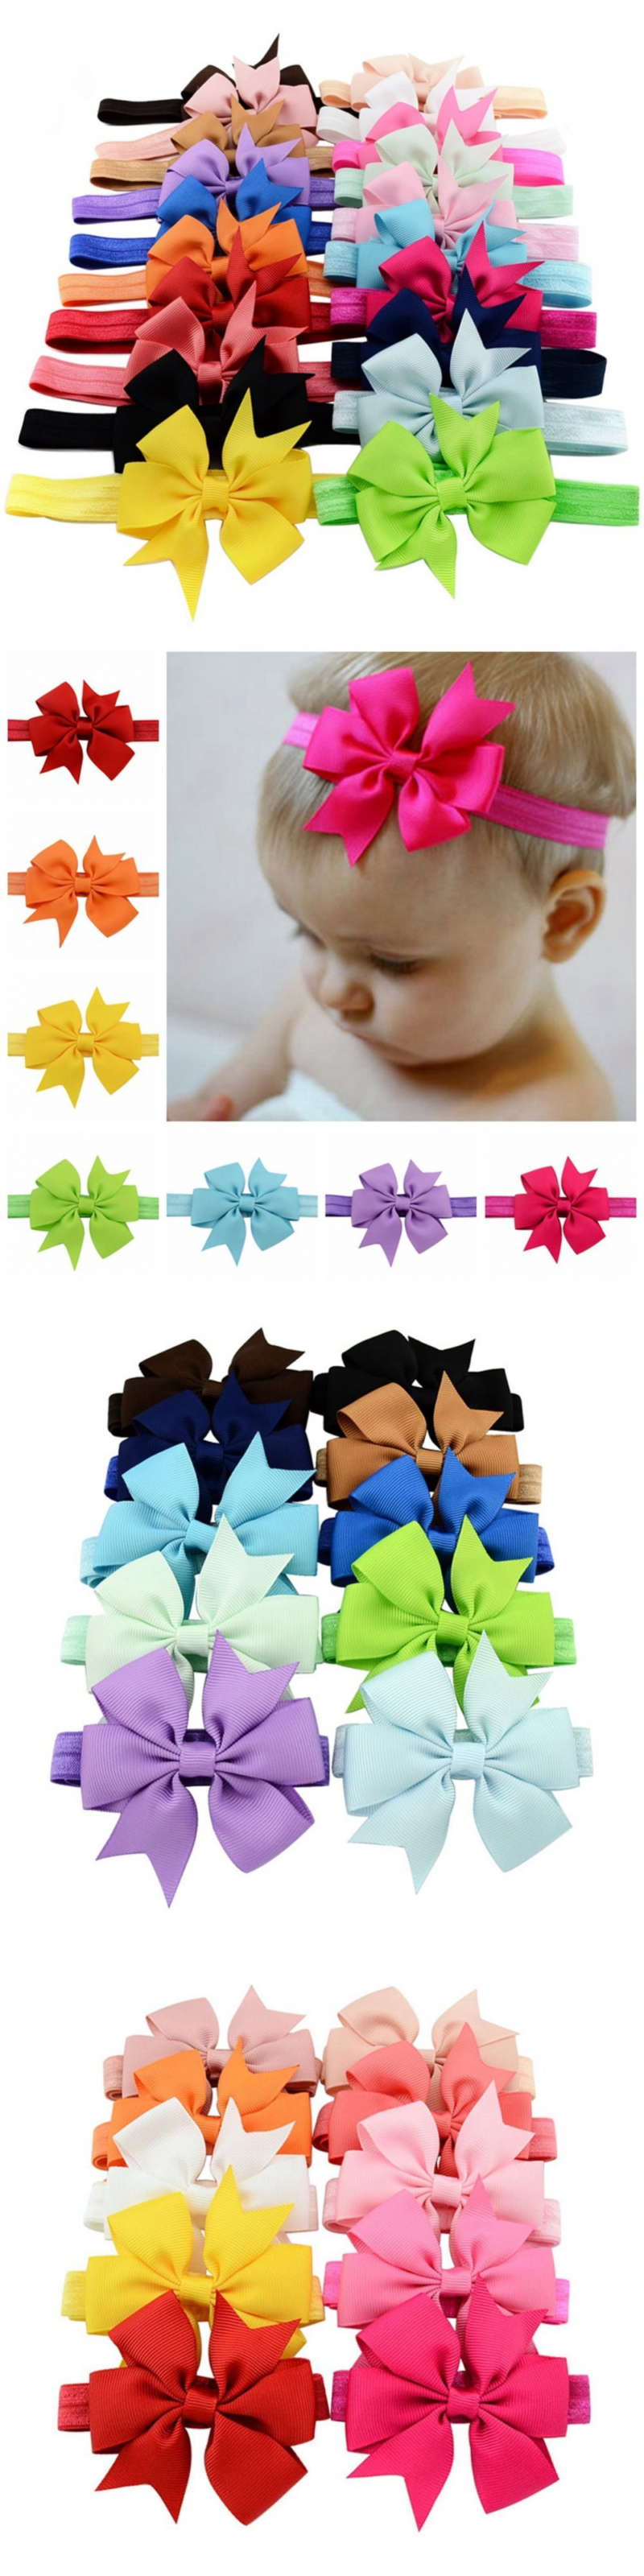 Hair accessories for babies ebay - Hair Accessories 18786 20pcs Lot 3 Inch Cute Kids Baby Girls Headband Toddler Infant Chiffon